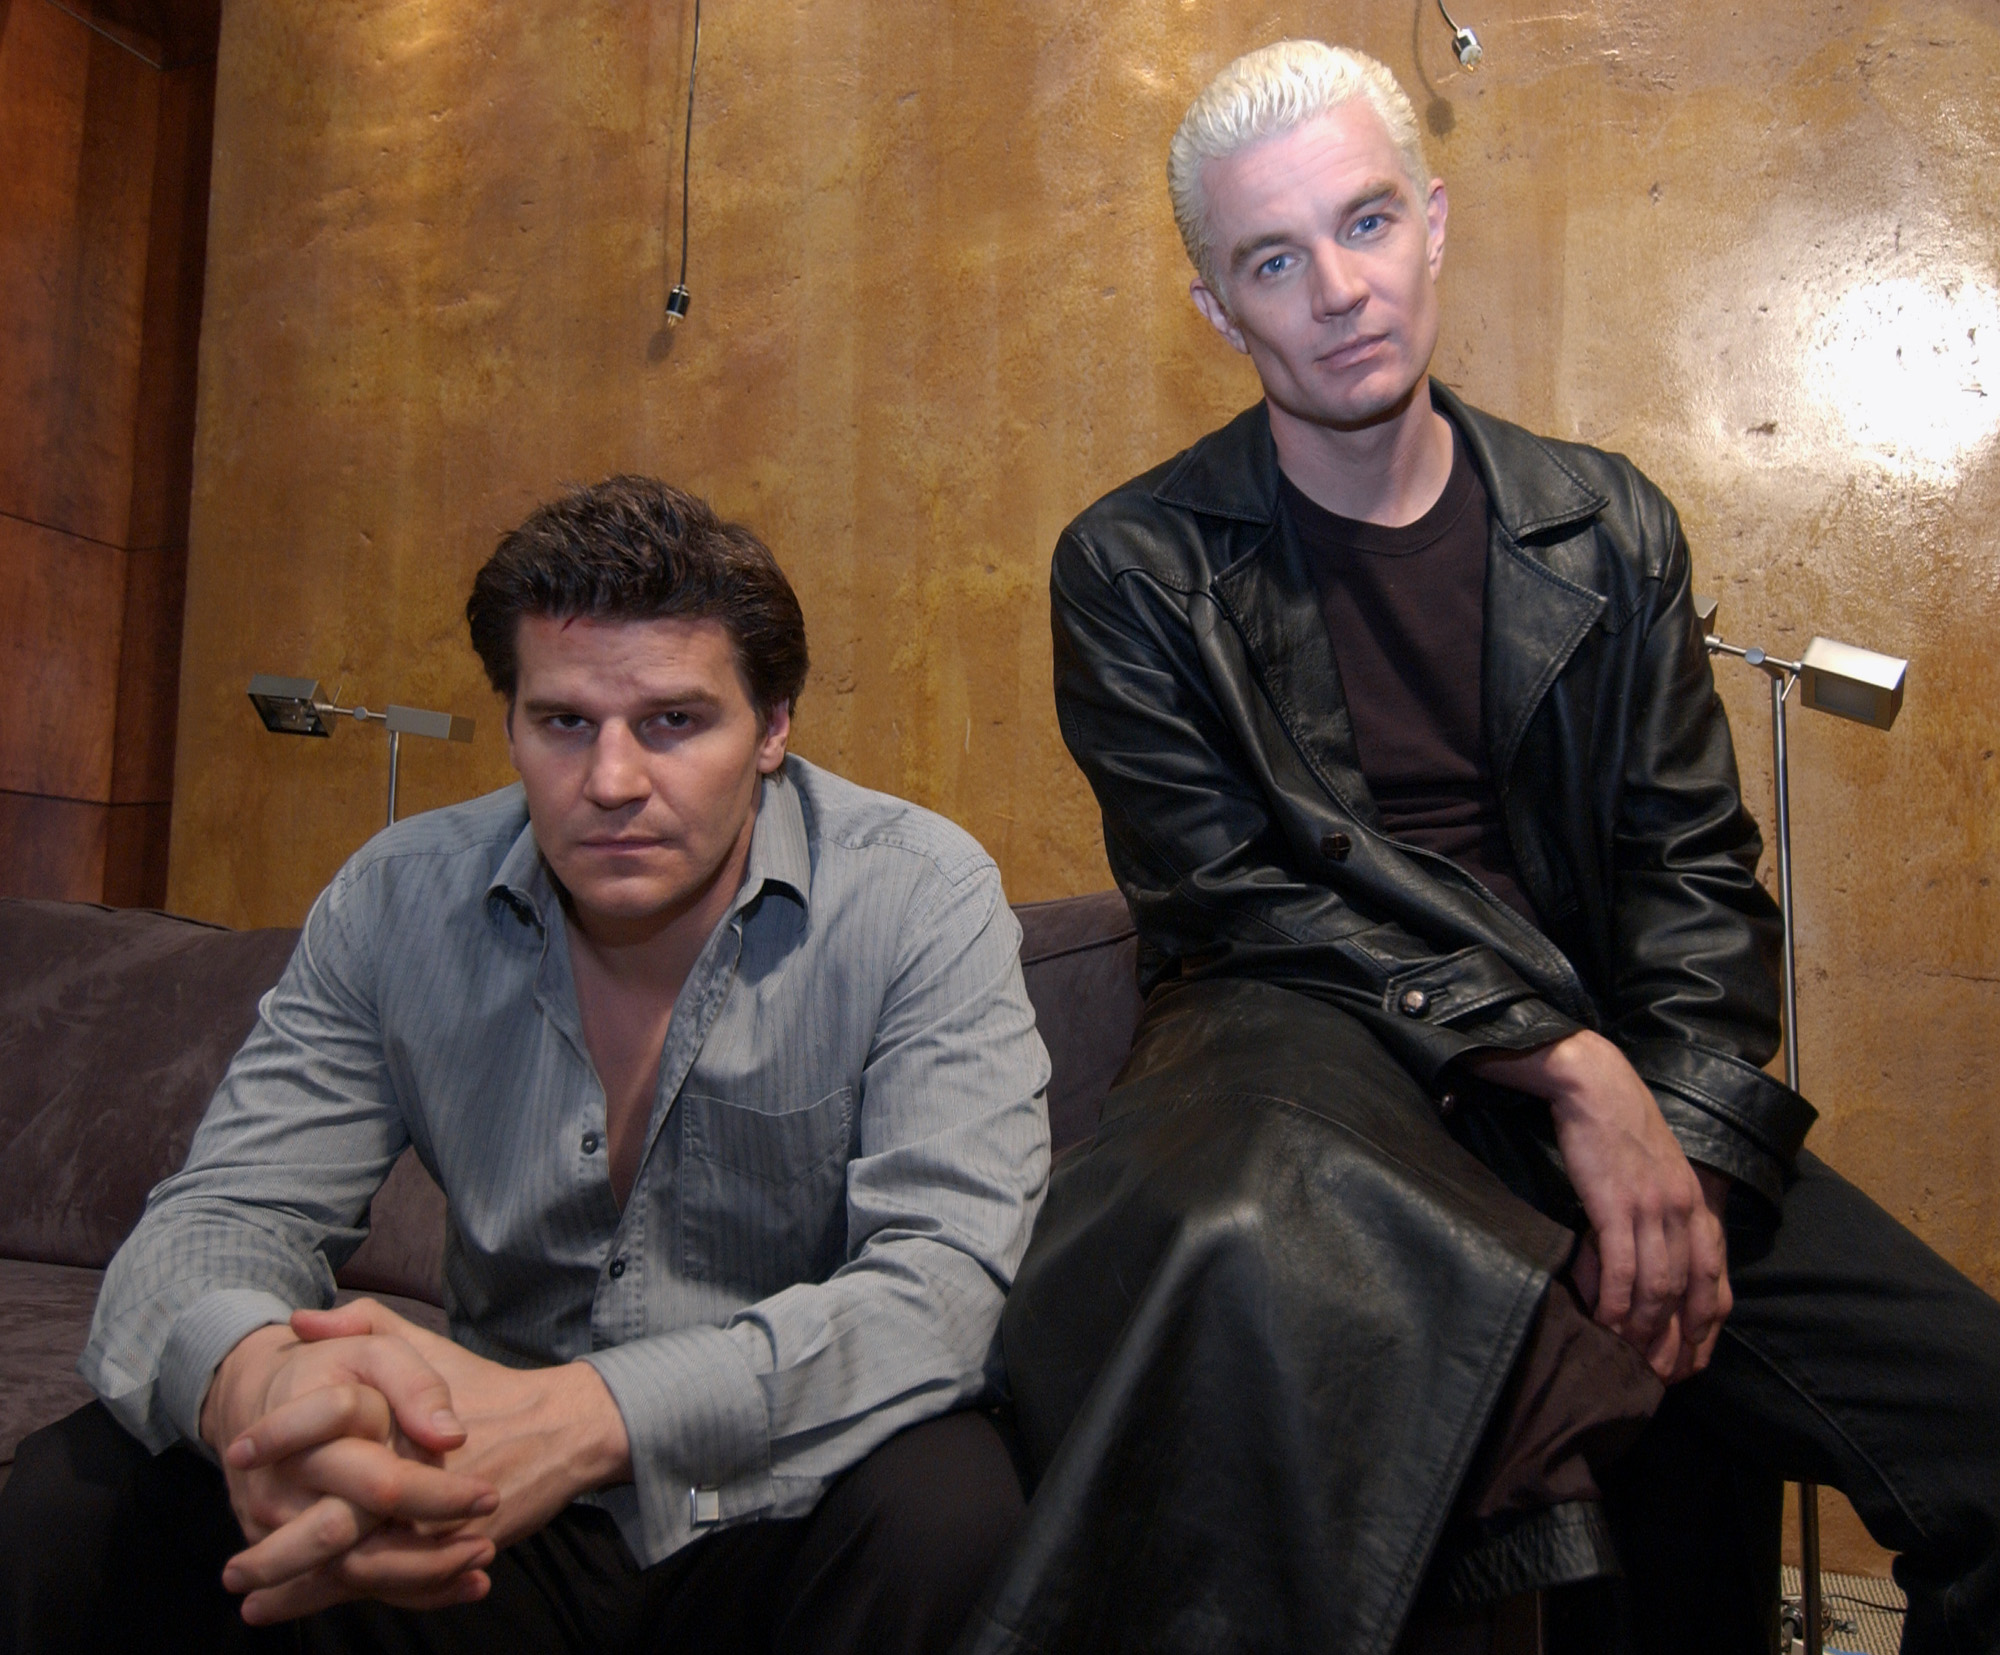 """BOREANAZ MARSTERS Actors David Boreanaz, left, and James Marsters who star in The WB's thriller series """"Angel,"""" pose for a photo on the set of the show, in Los Angeles. The program, recently renewed for a fifth season due to support from critics and outspoken cult-fans, chronicles the life of Angel, played by Boreanaz, a 250-year-old vampire trying to redeem his wickedness by helping people in demon infested Los Angeles. Marsters who appeared in """"Buffy the Vampire Slayer,"""" reprises his role as Spike on """"AngelTV REVAMPING ANGEL, LOS ANGELES, USA"""